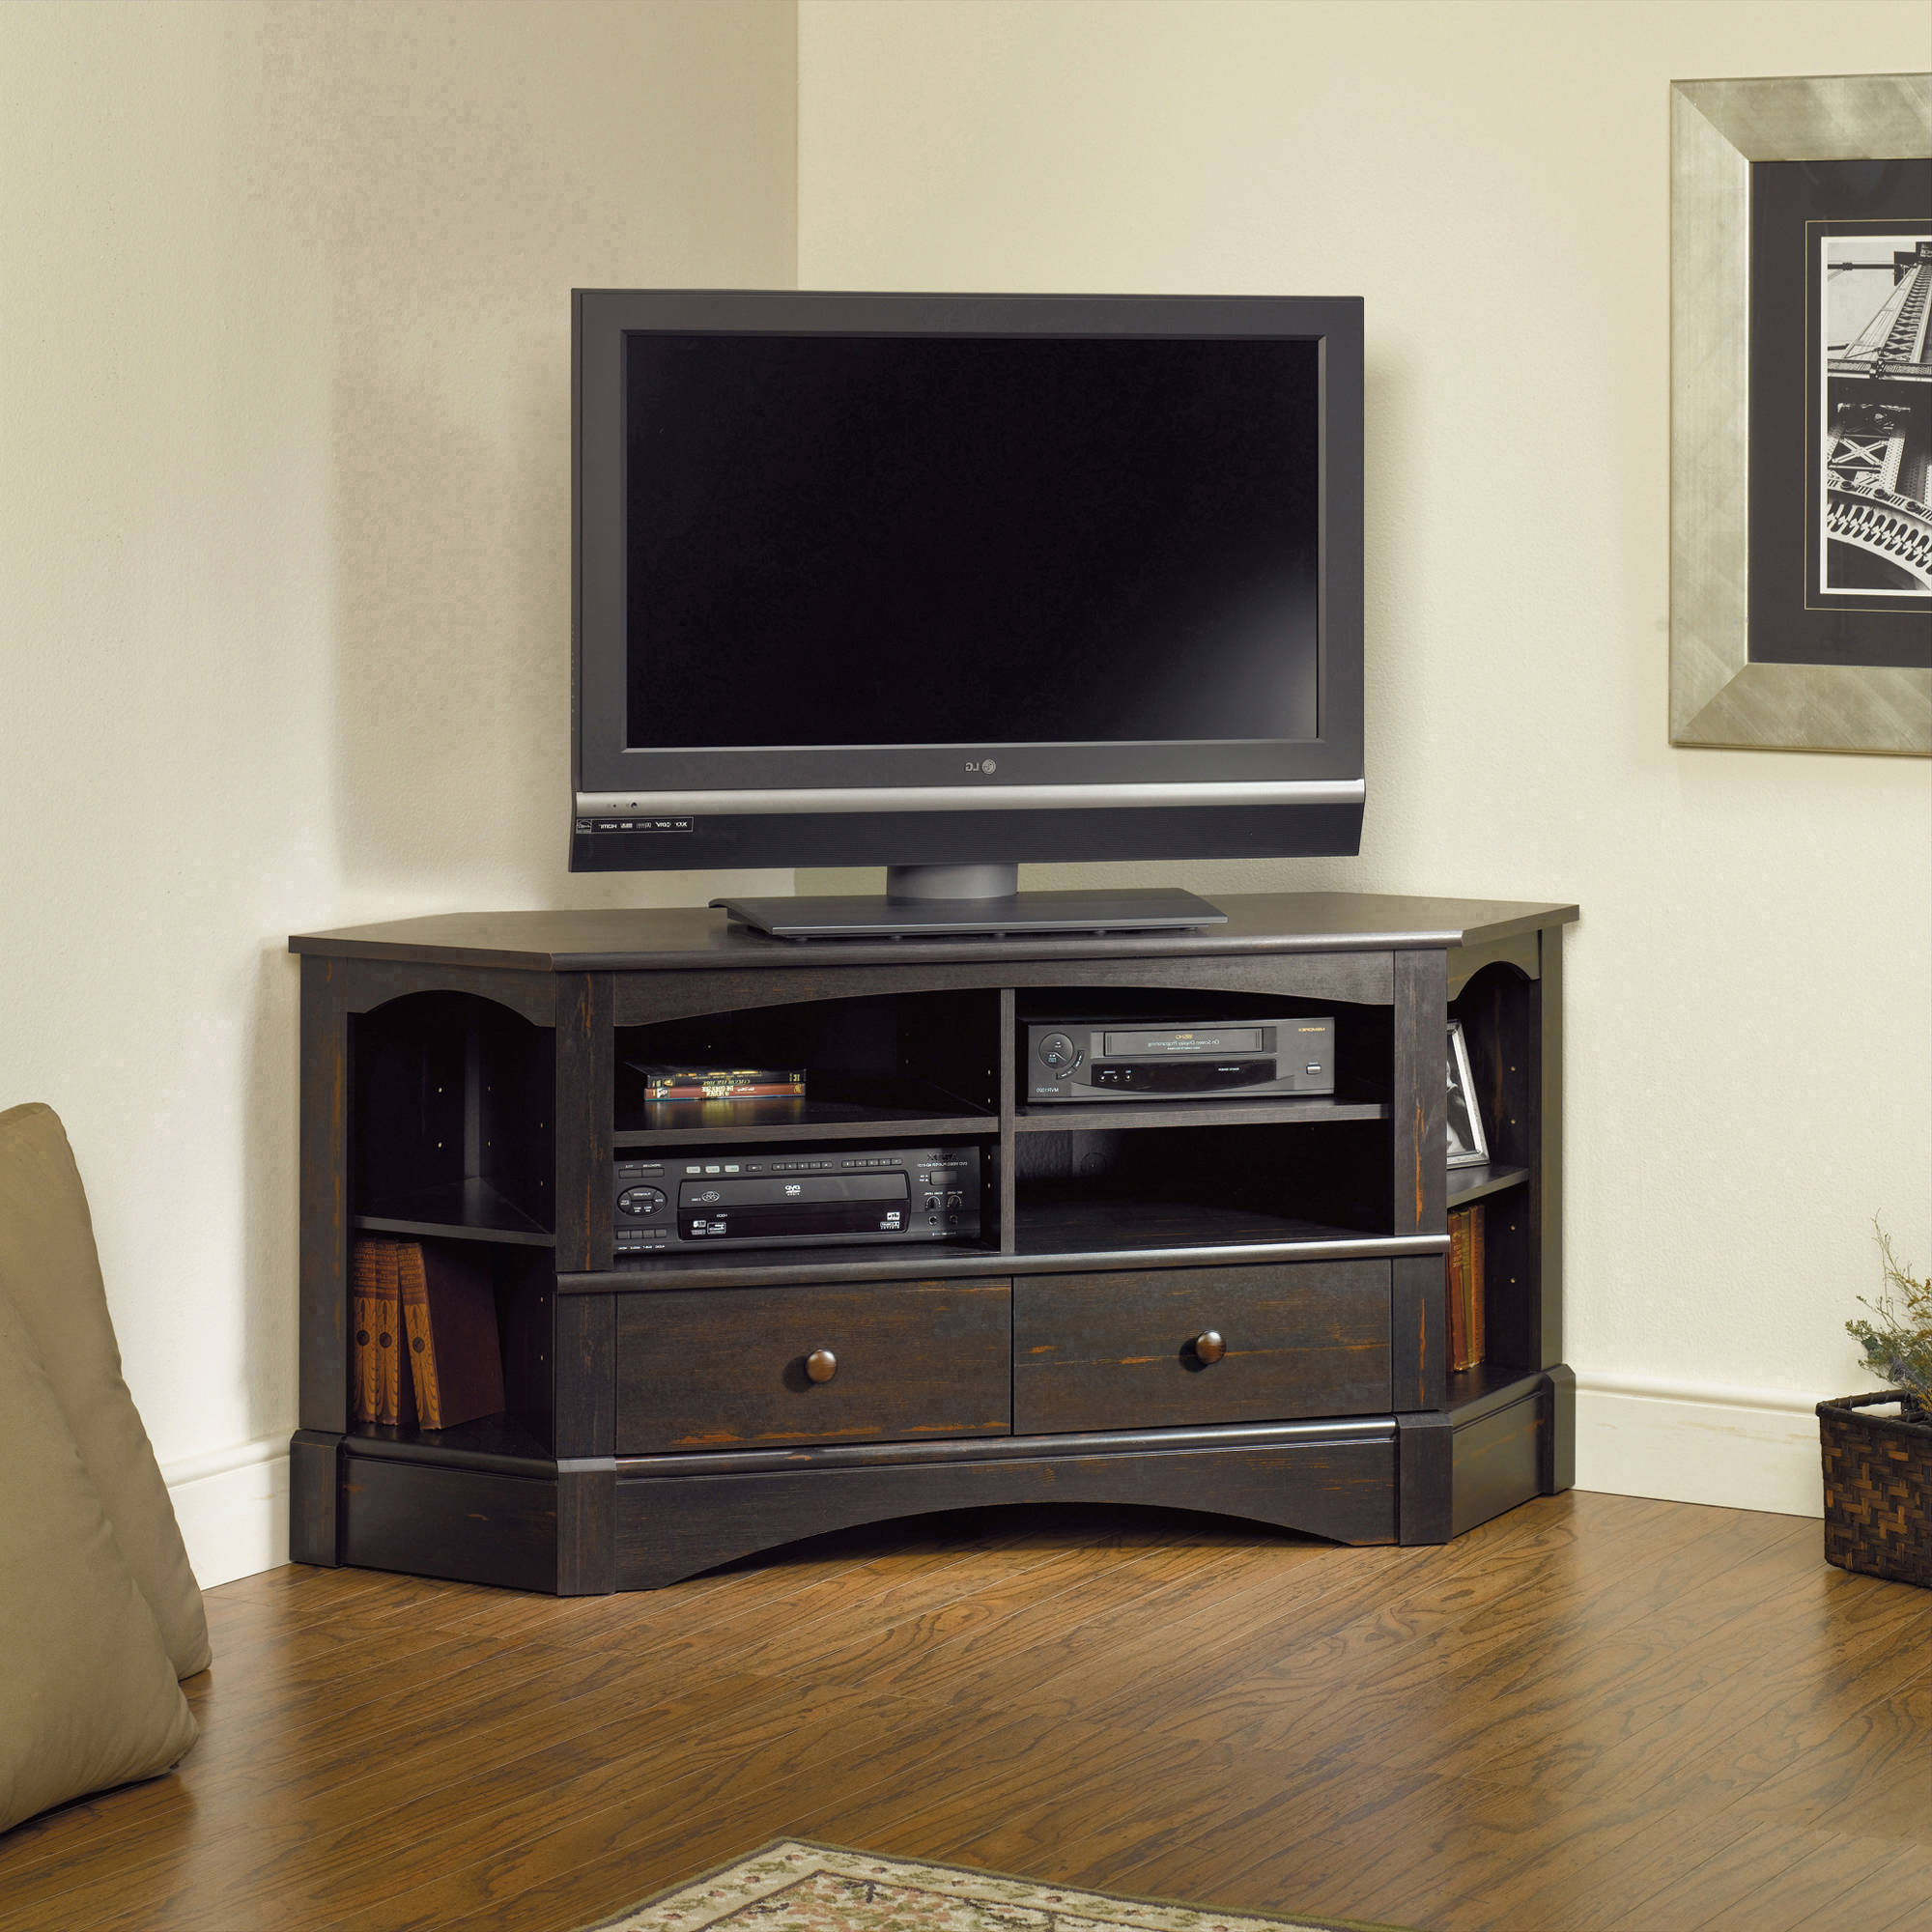 Oak Corner Tv Stand For 50 Inch Walmart Cabinet 60 Hooker Black Inside Well Known Corner Tv Stands For 60 Inch Tv (View 16 of 20)